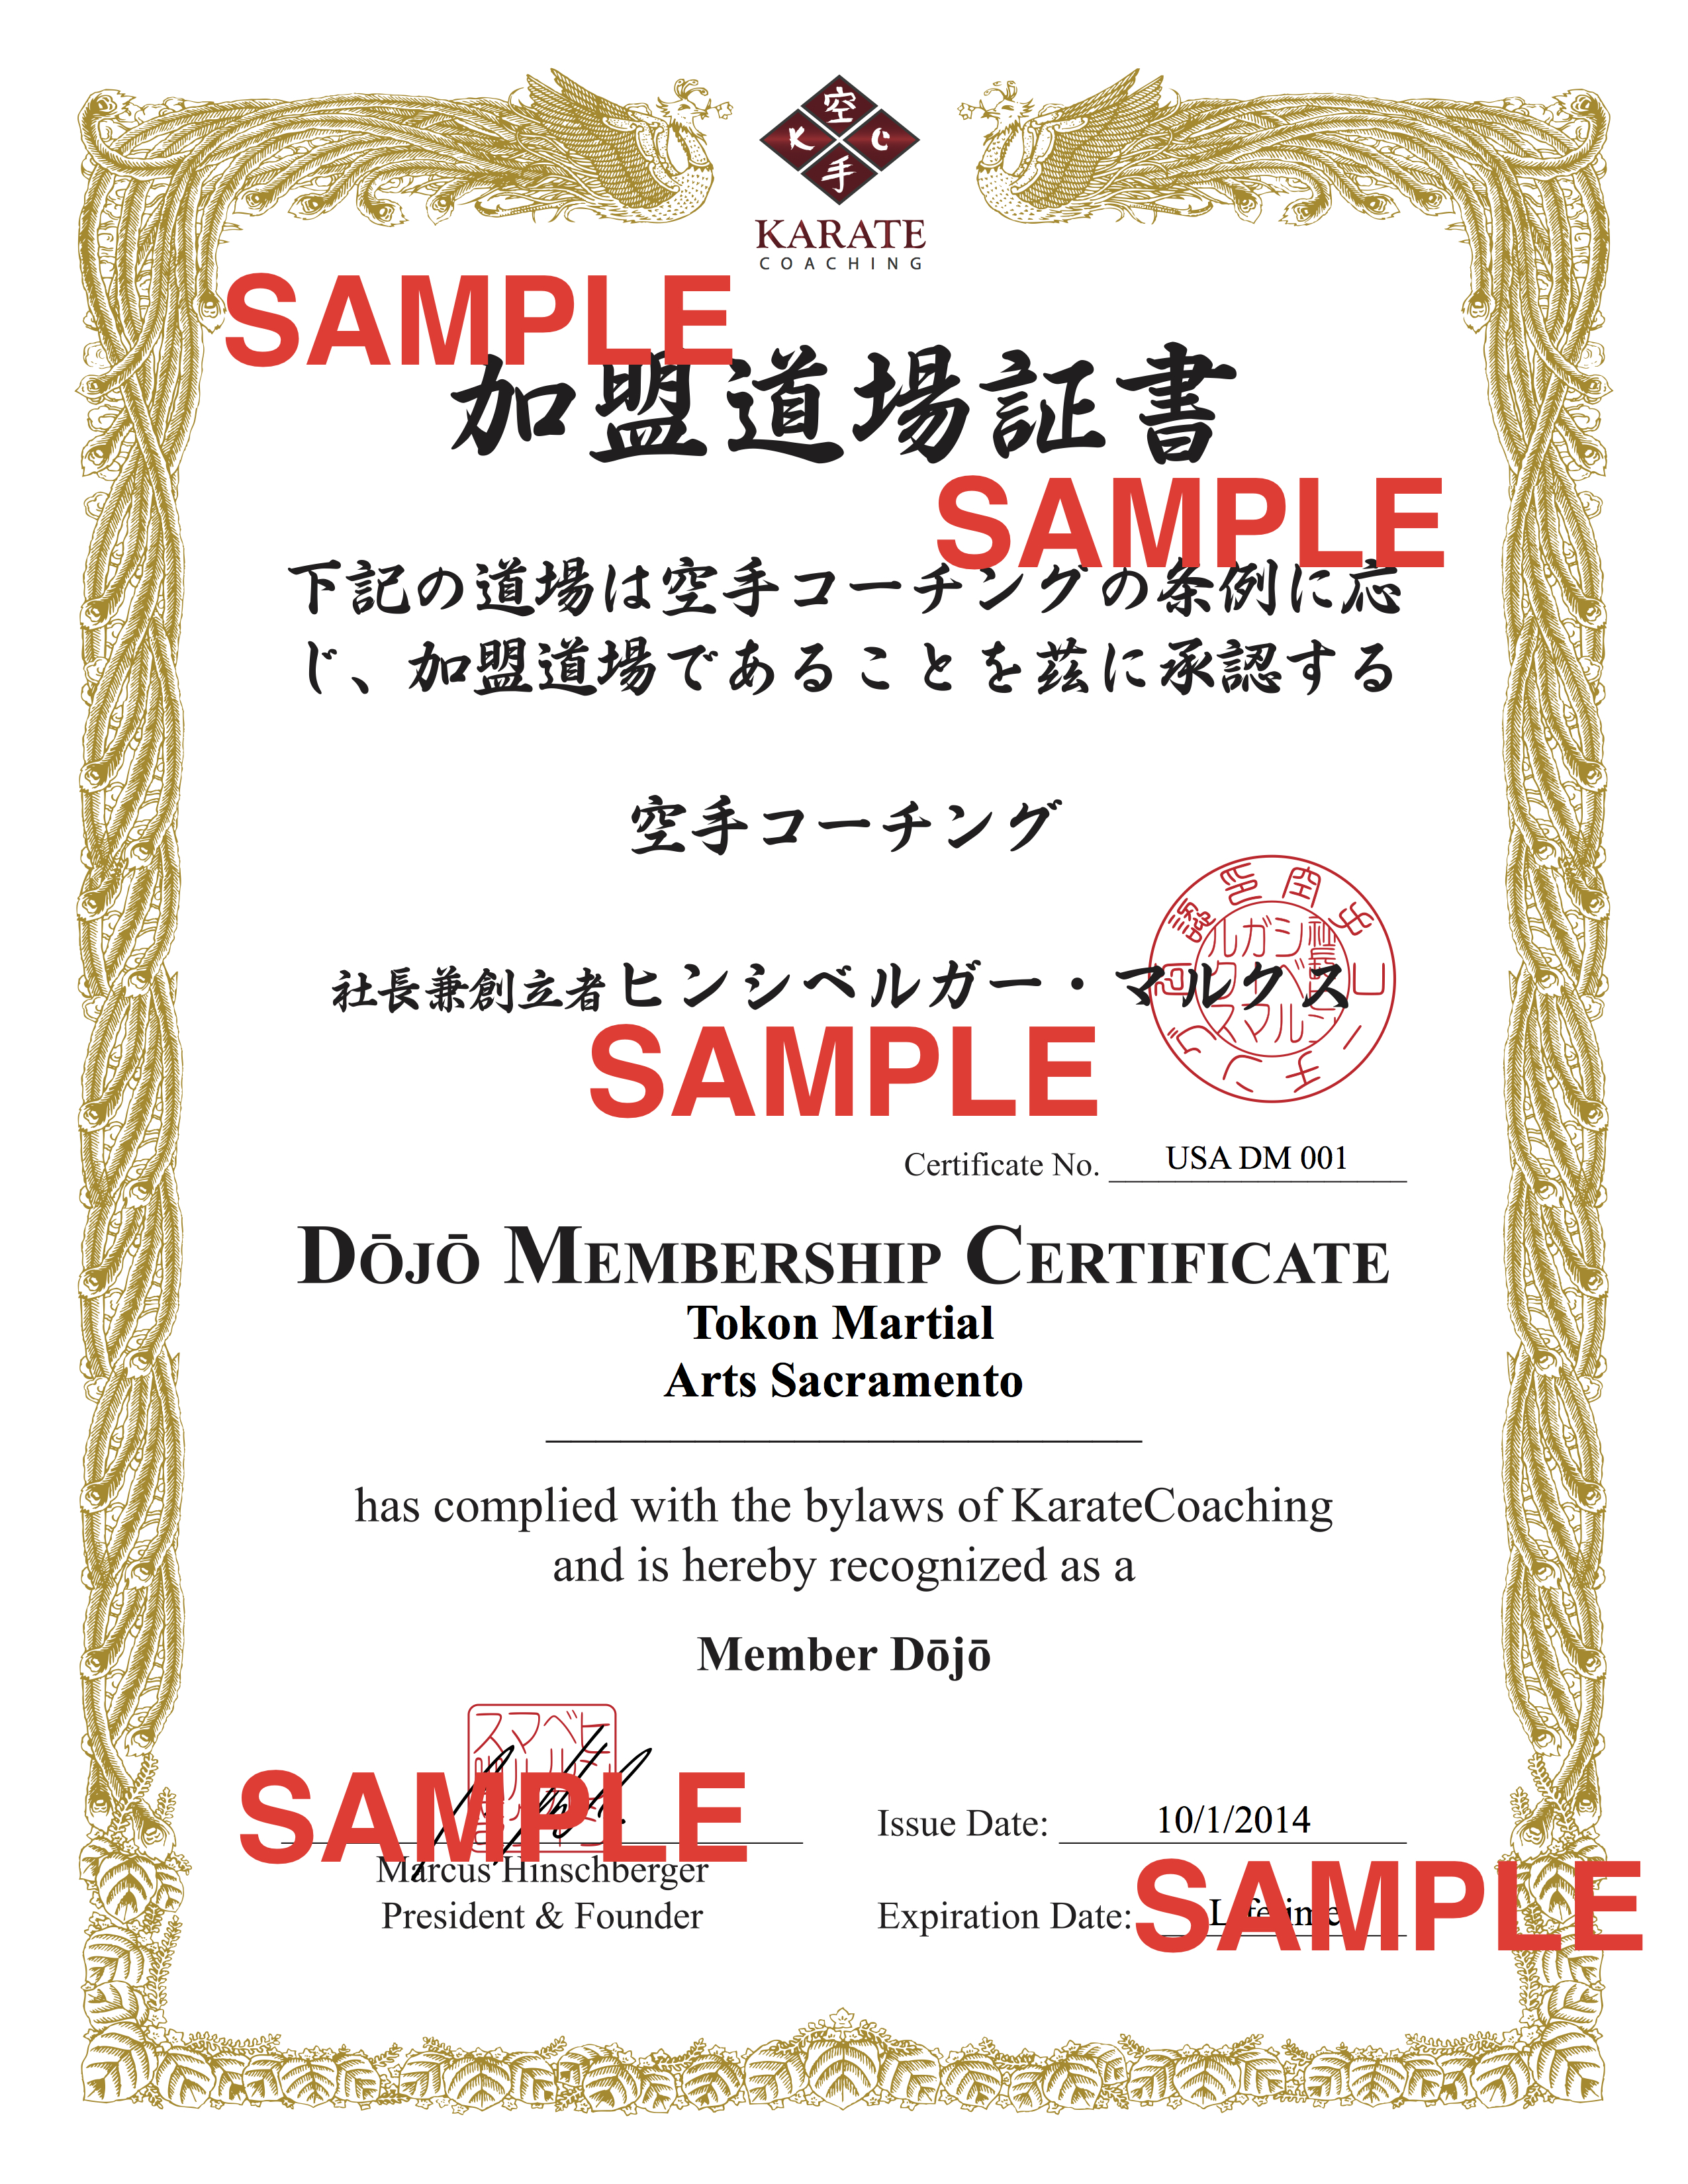 KarateCoaching Dojo Membership Certificate KarateCoaching – Sample Membership Certificate